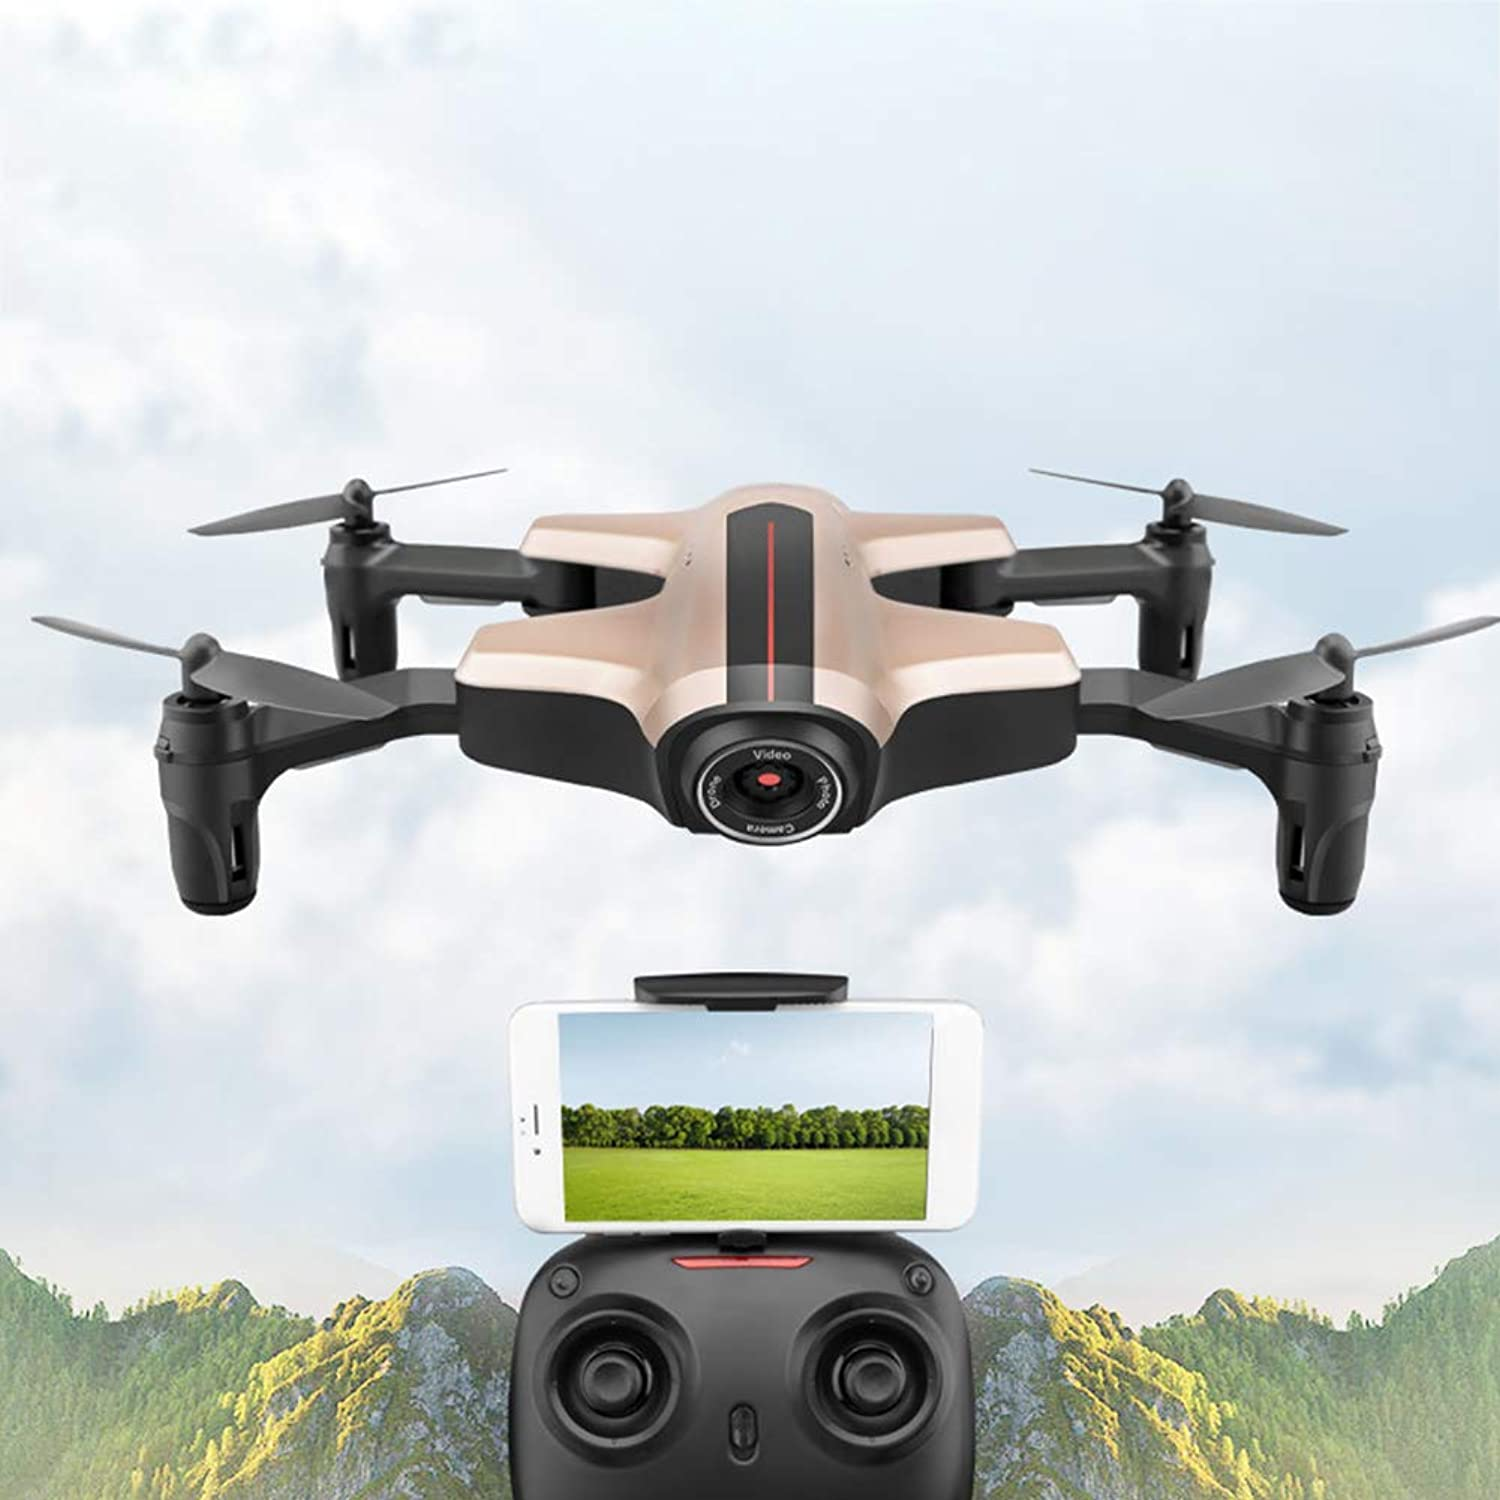 Drone, 2.4GHz Altitude Hold Wide Angle GSensor Remote Control Toys WiFi FPV Foldable Headless Mode RC Quadcopter FourAxis with HD Camera(pink gold)